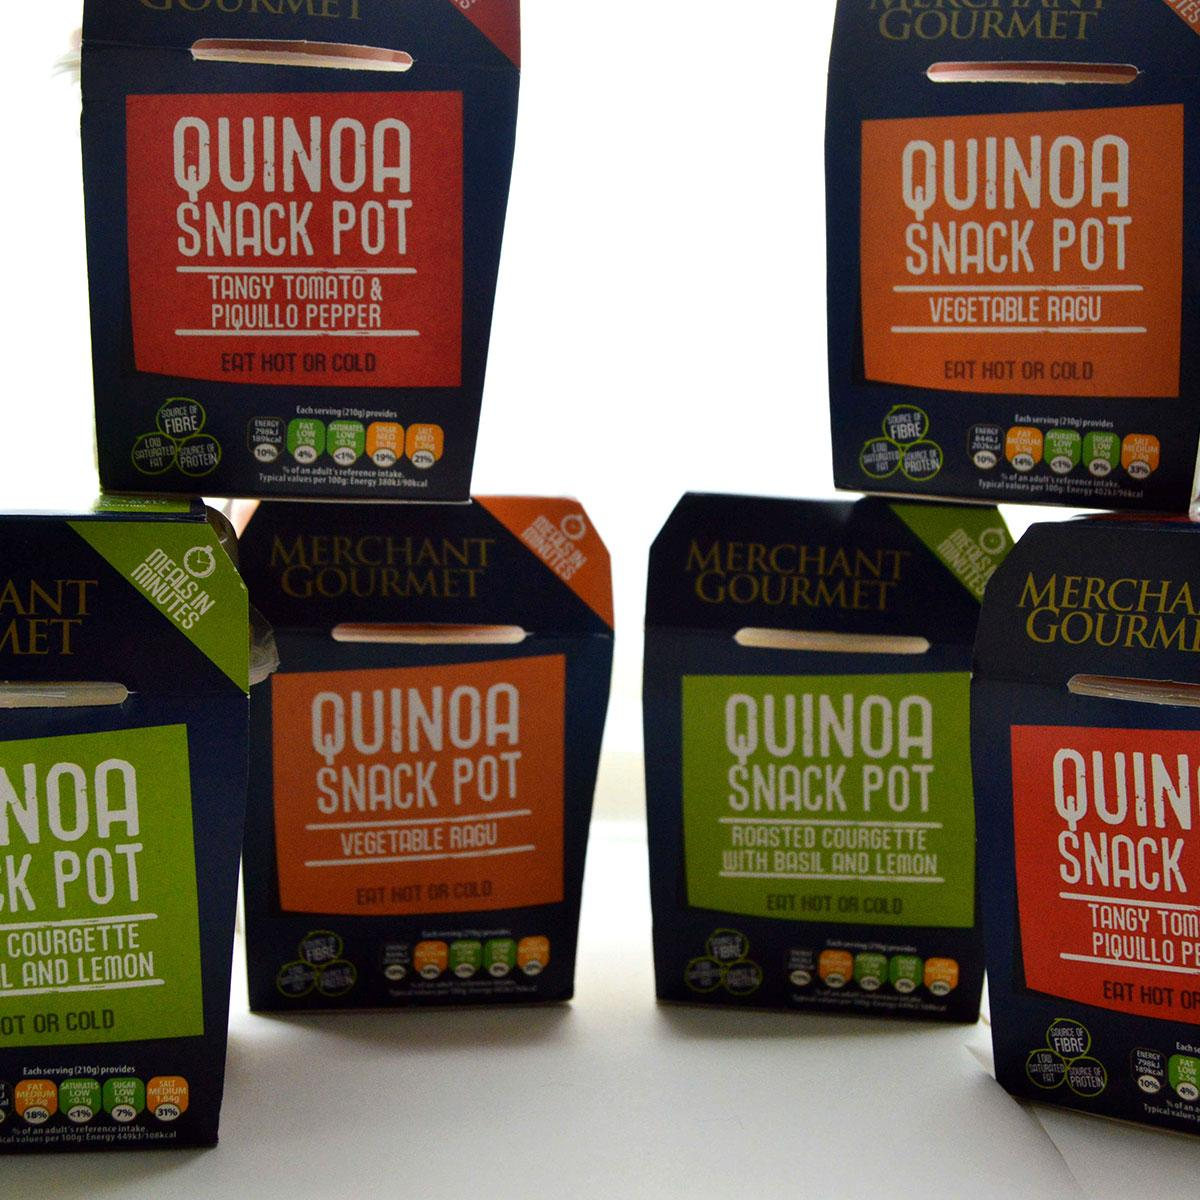 It's #Meatfreemonday so we're swapping sarnies for #quinoa . RT your healthy #Summerfoodswaps to win something tasty! http://t.co/b43PJ4UmtF